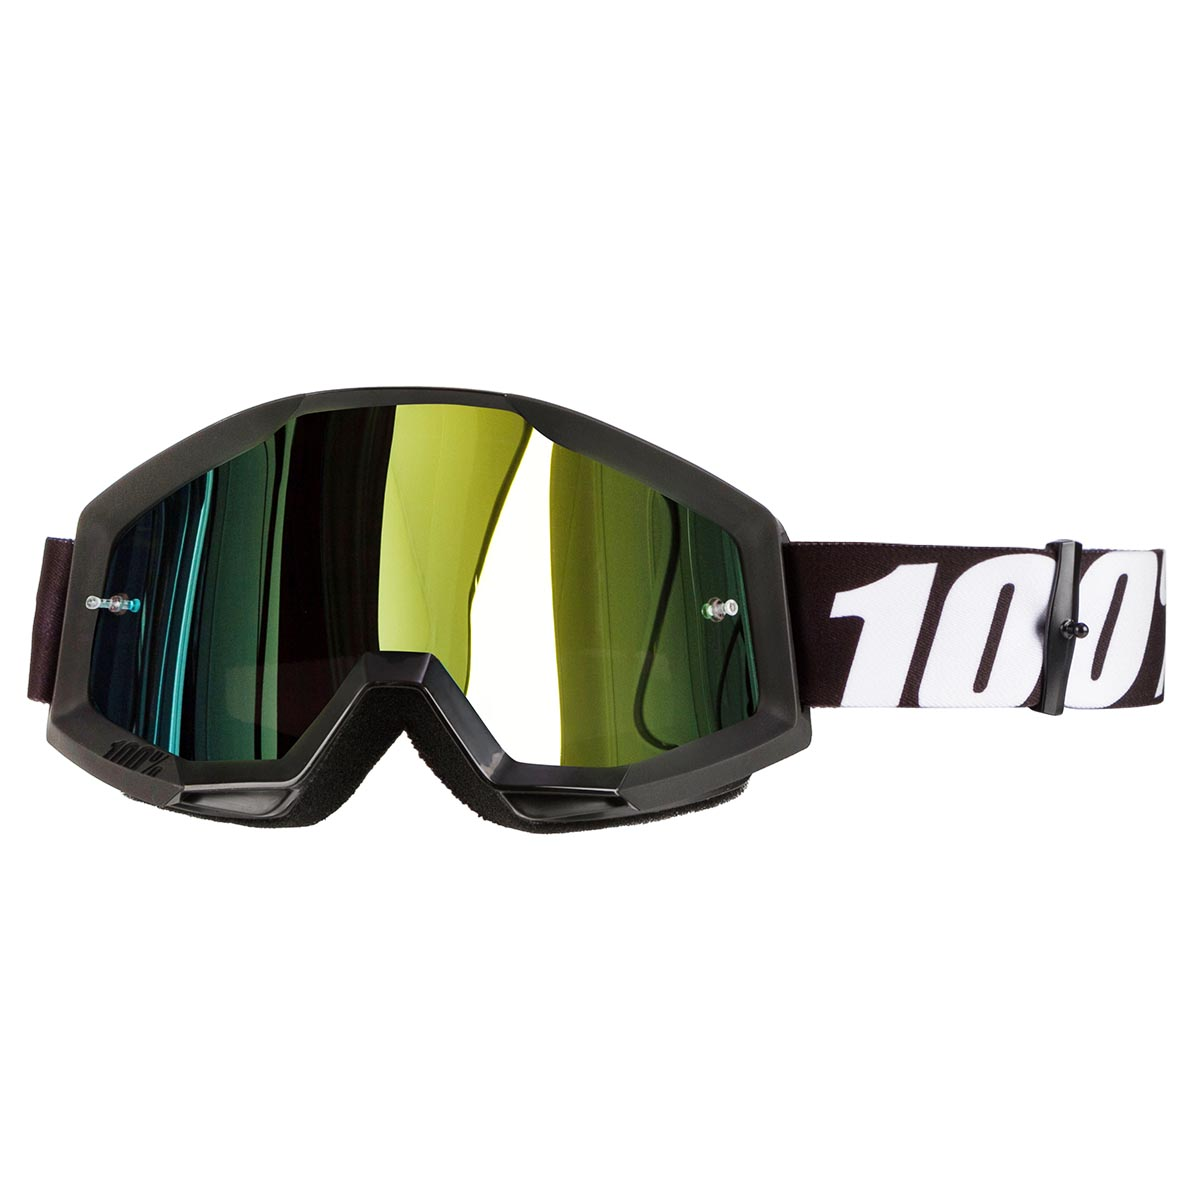 100% Crossbrille The Strata Outlaw - Gold verspiegelt Anti-Fog